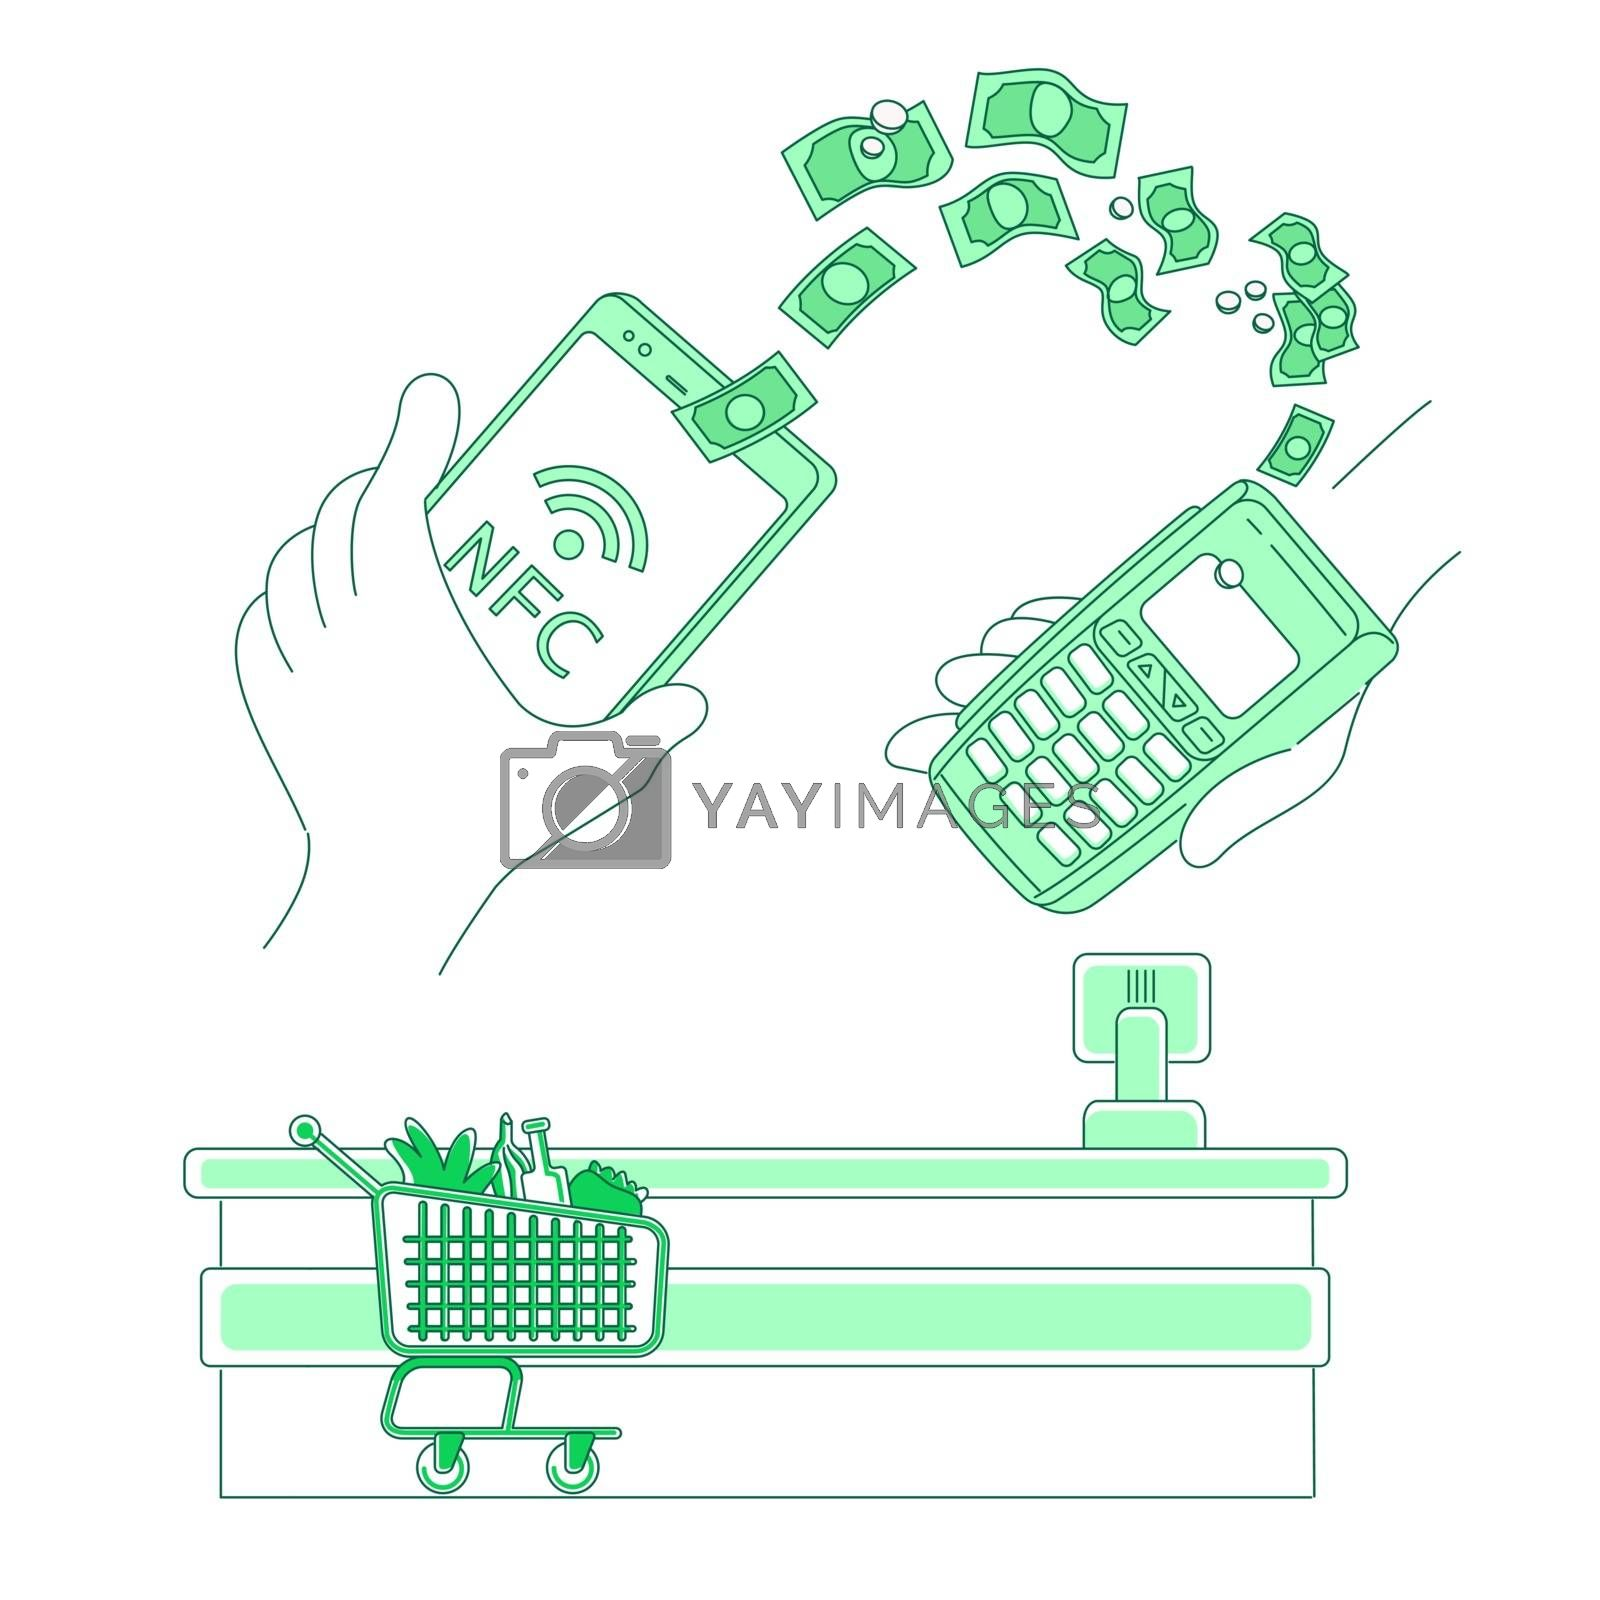 E-payment terminal thin line concept vector illustration. Mobile payment, people with smart devices 2D cartoon characters for web design. NFC pay, money transfer, e-wallet application creative idea